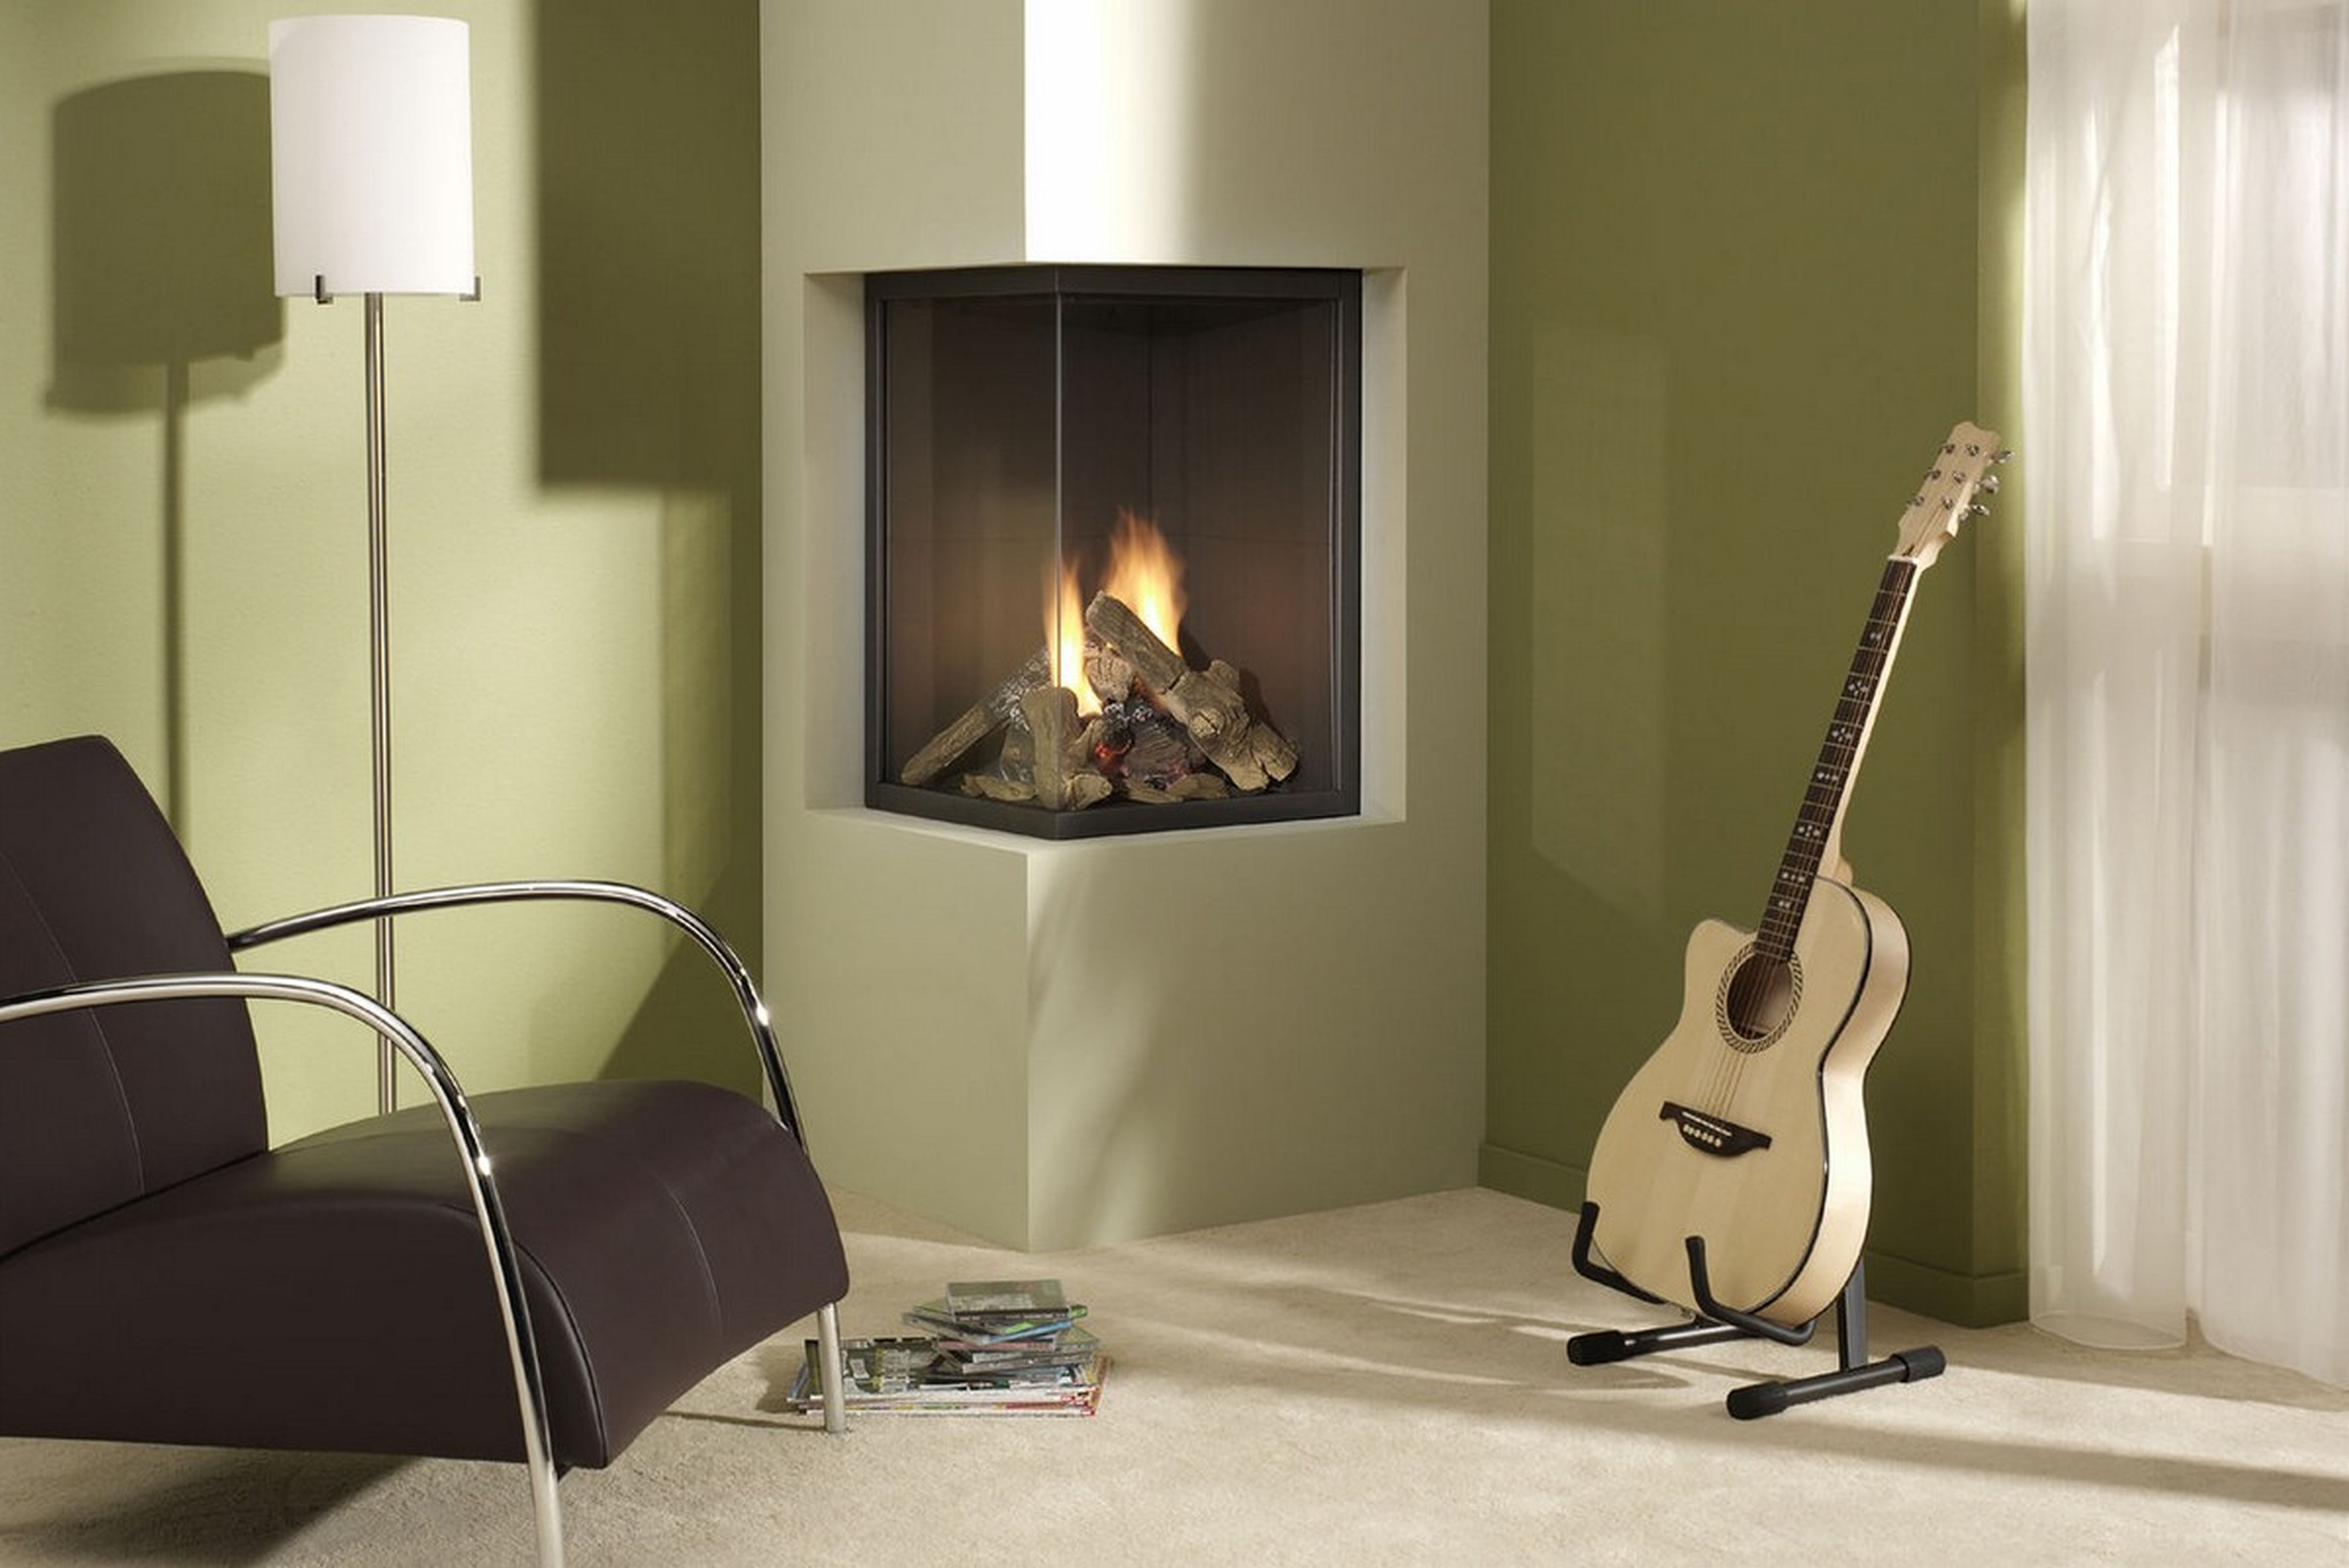 flue gas fireplace studio sided in duplex wall gazco verve fires balanced the fire efficiency tunnel double glass hole high